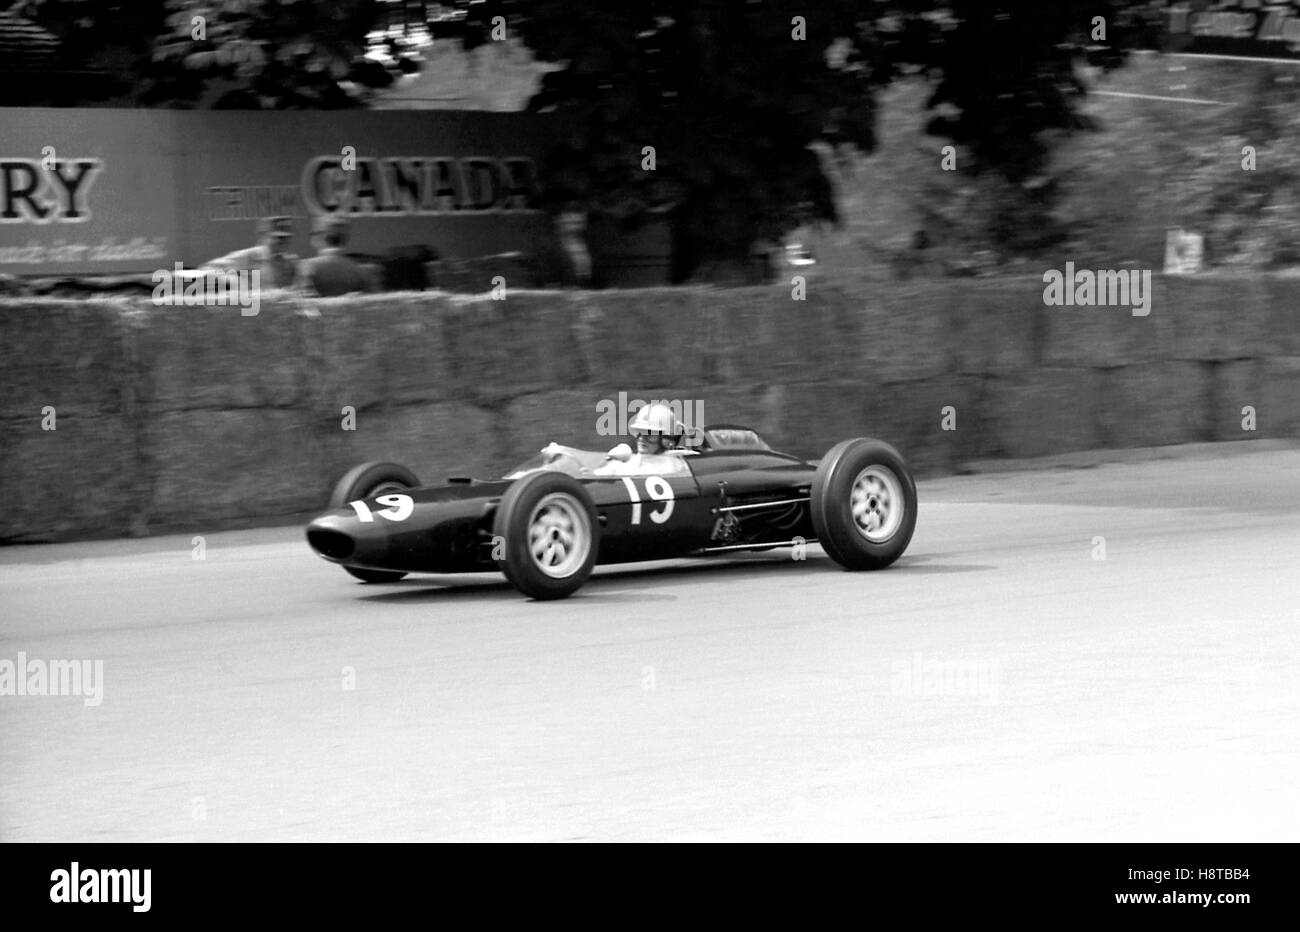 1963 SOLITUDE GP CHRIS AMON PARNELL LOLA CLIMAX - Stock Image